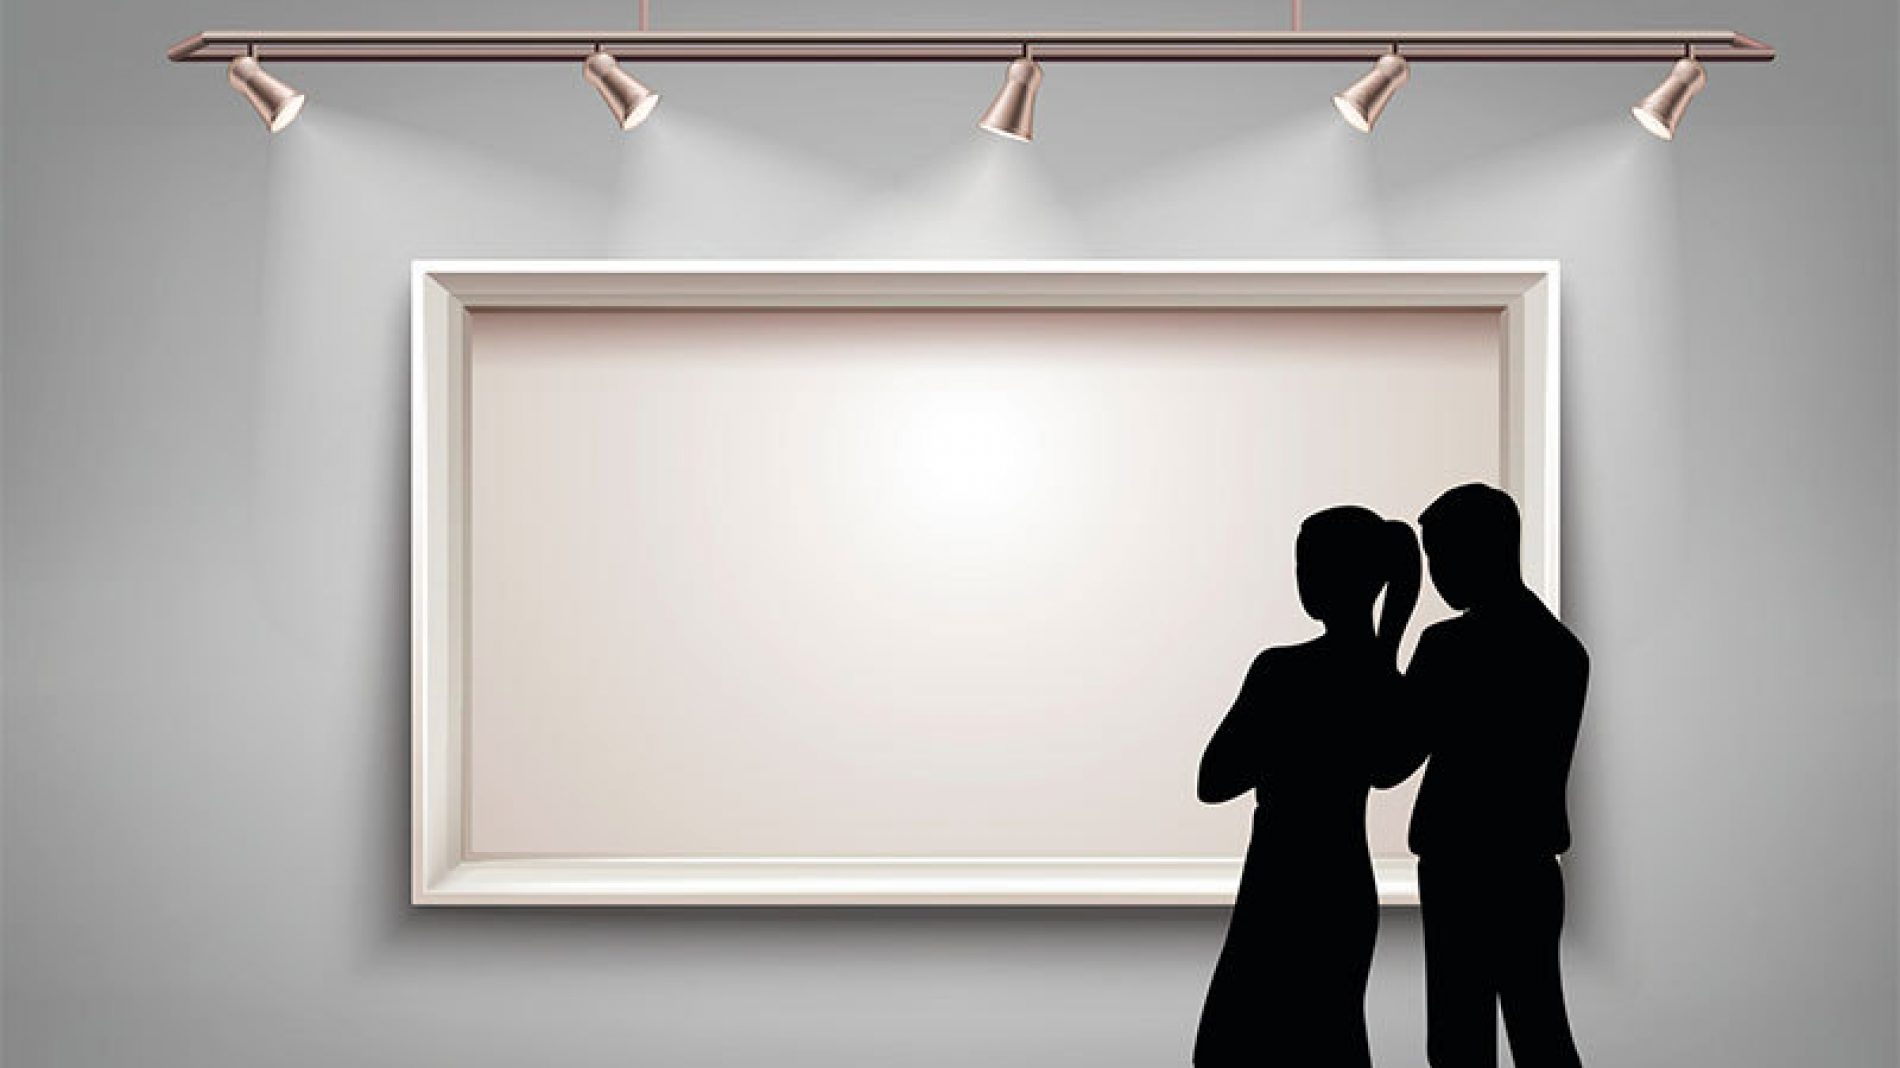 Two people in a gallery